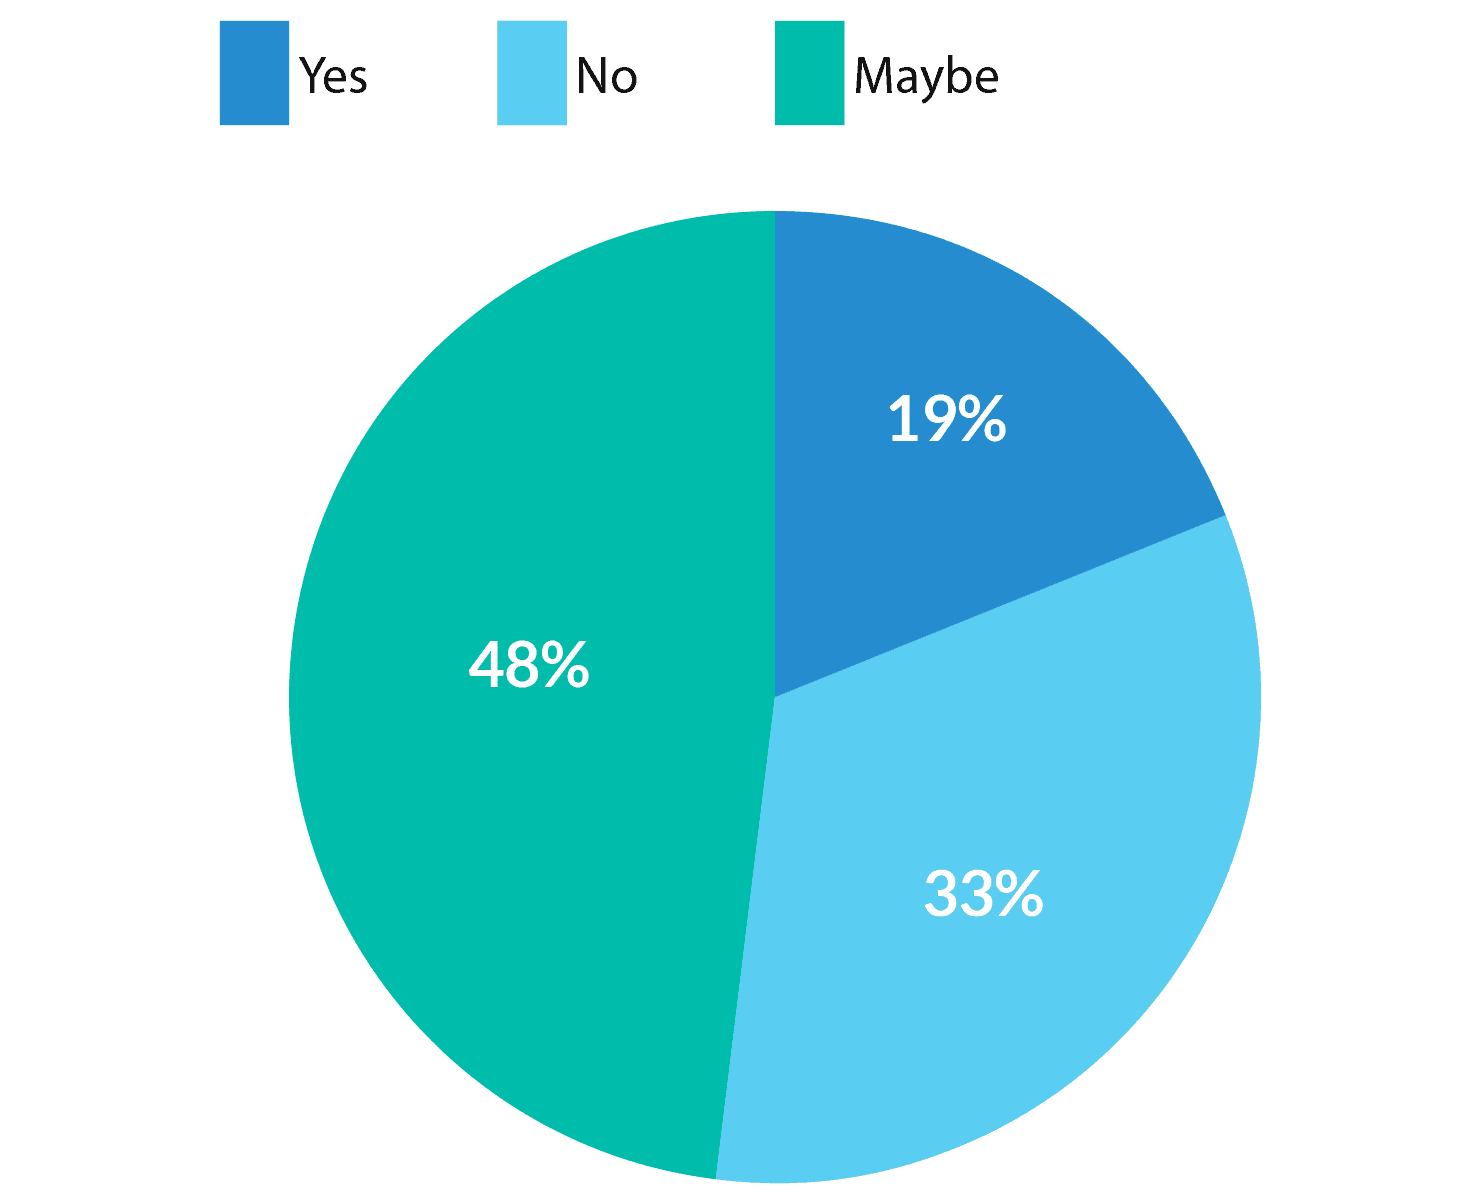 Do you plan to continue using Morningscore after the Beta? - pie chart